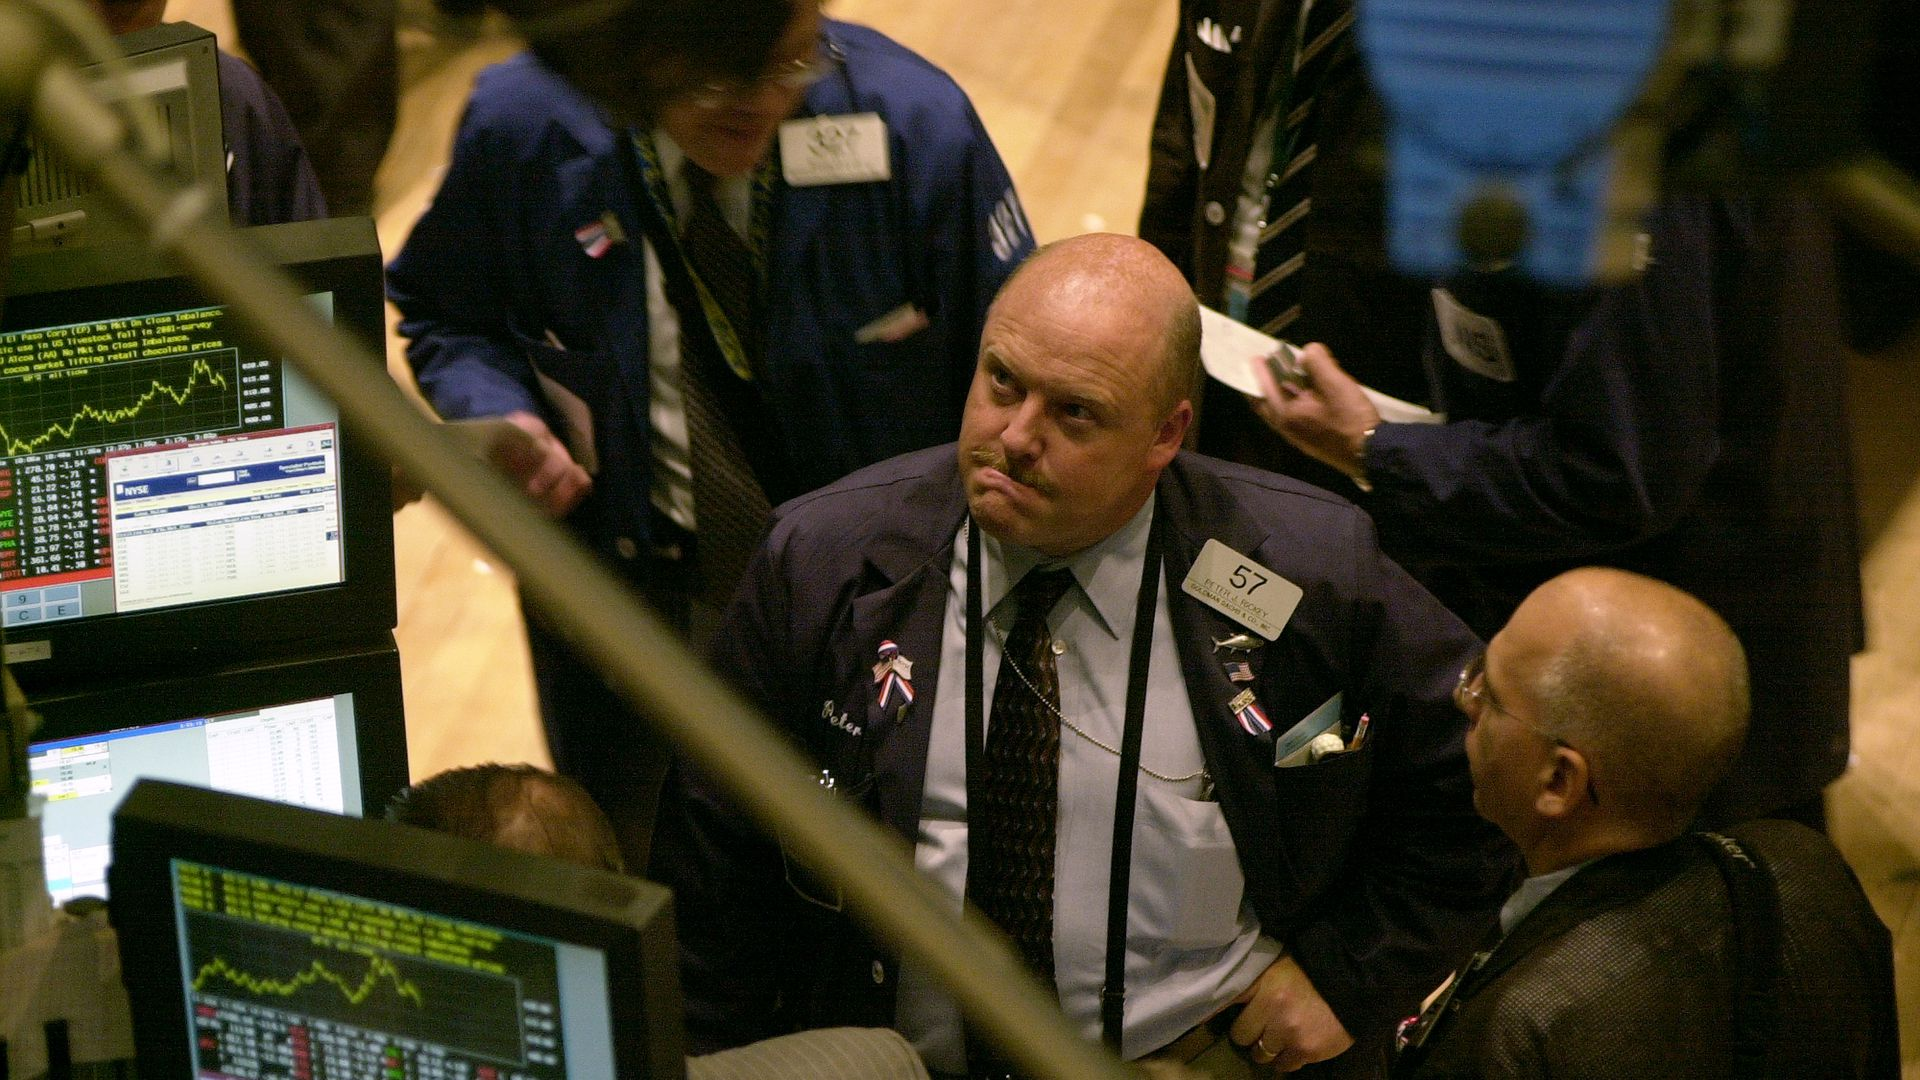 A trader on the floor of the exchange.